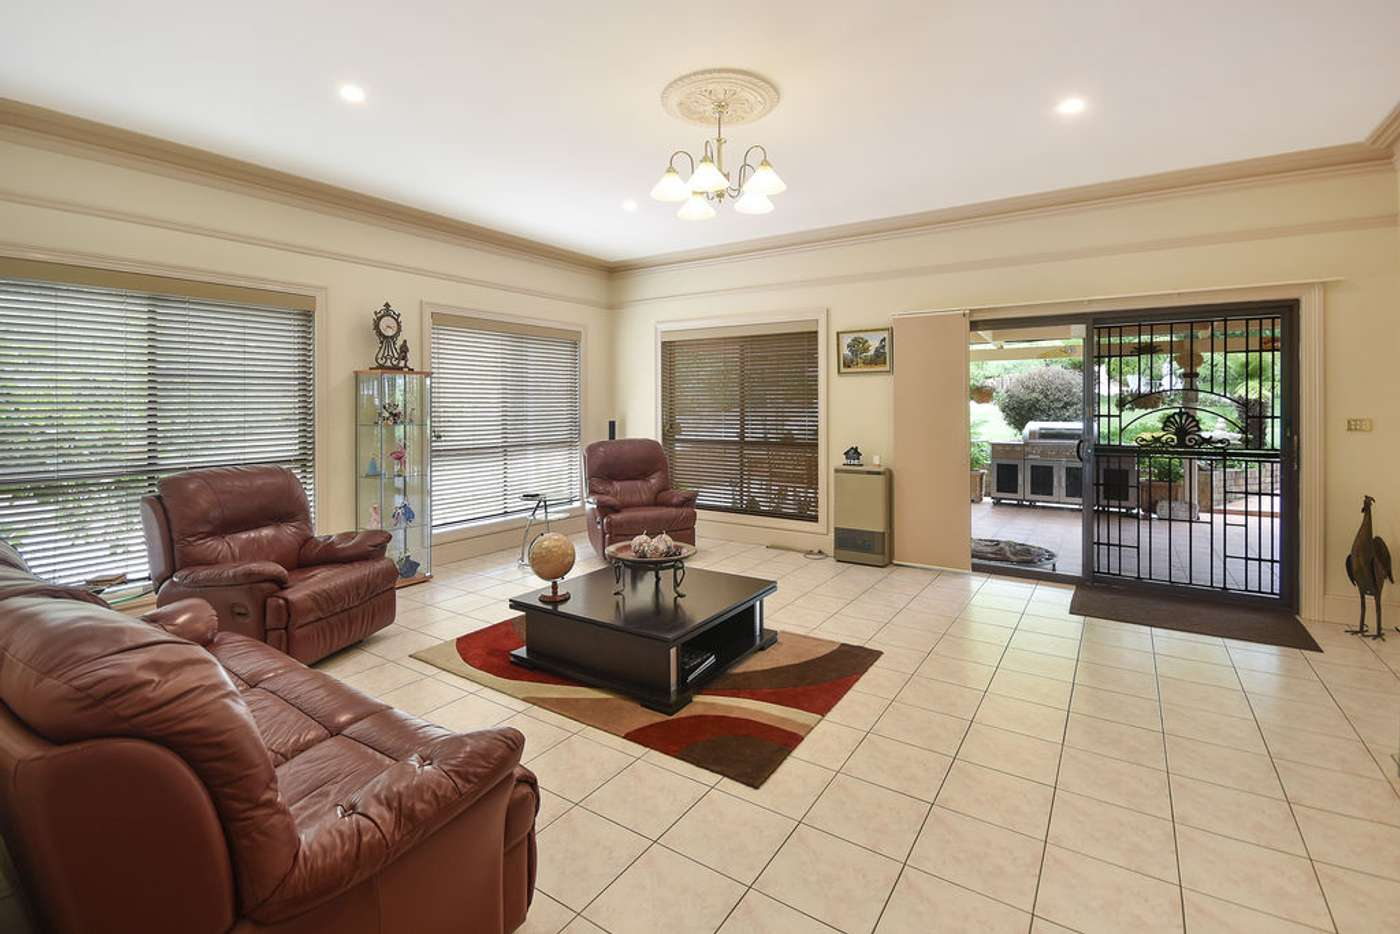 Fifth view of Homely house listing, 991 Great Western Highway, South Bowenfels NSW 2790